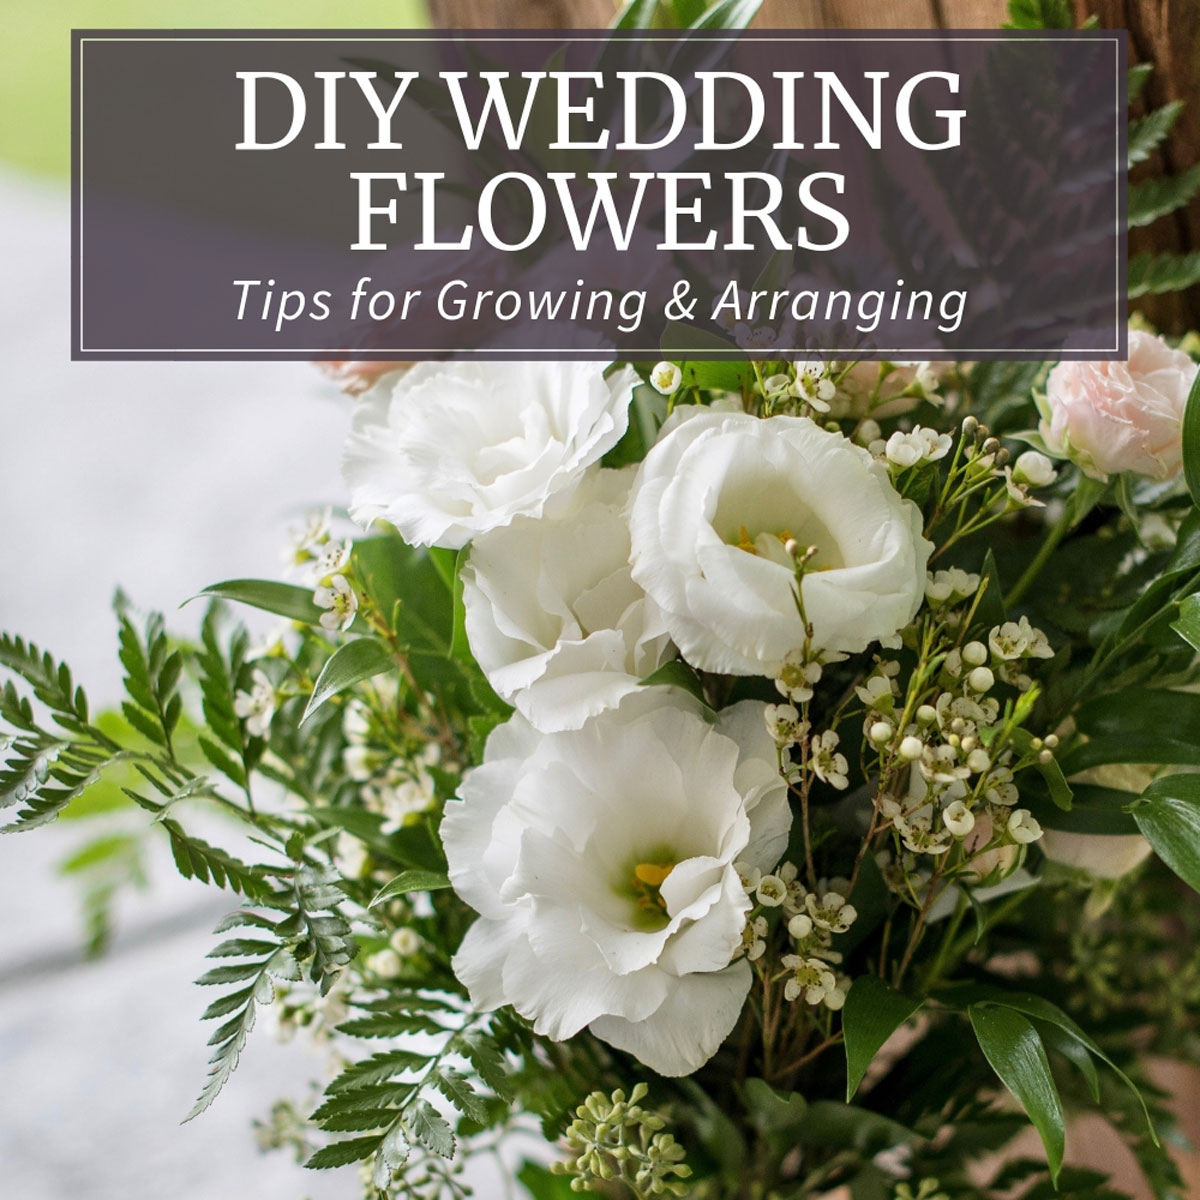 Diy Wedding Flowers Tips For Growing And Arranging